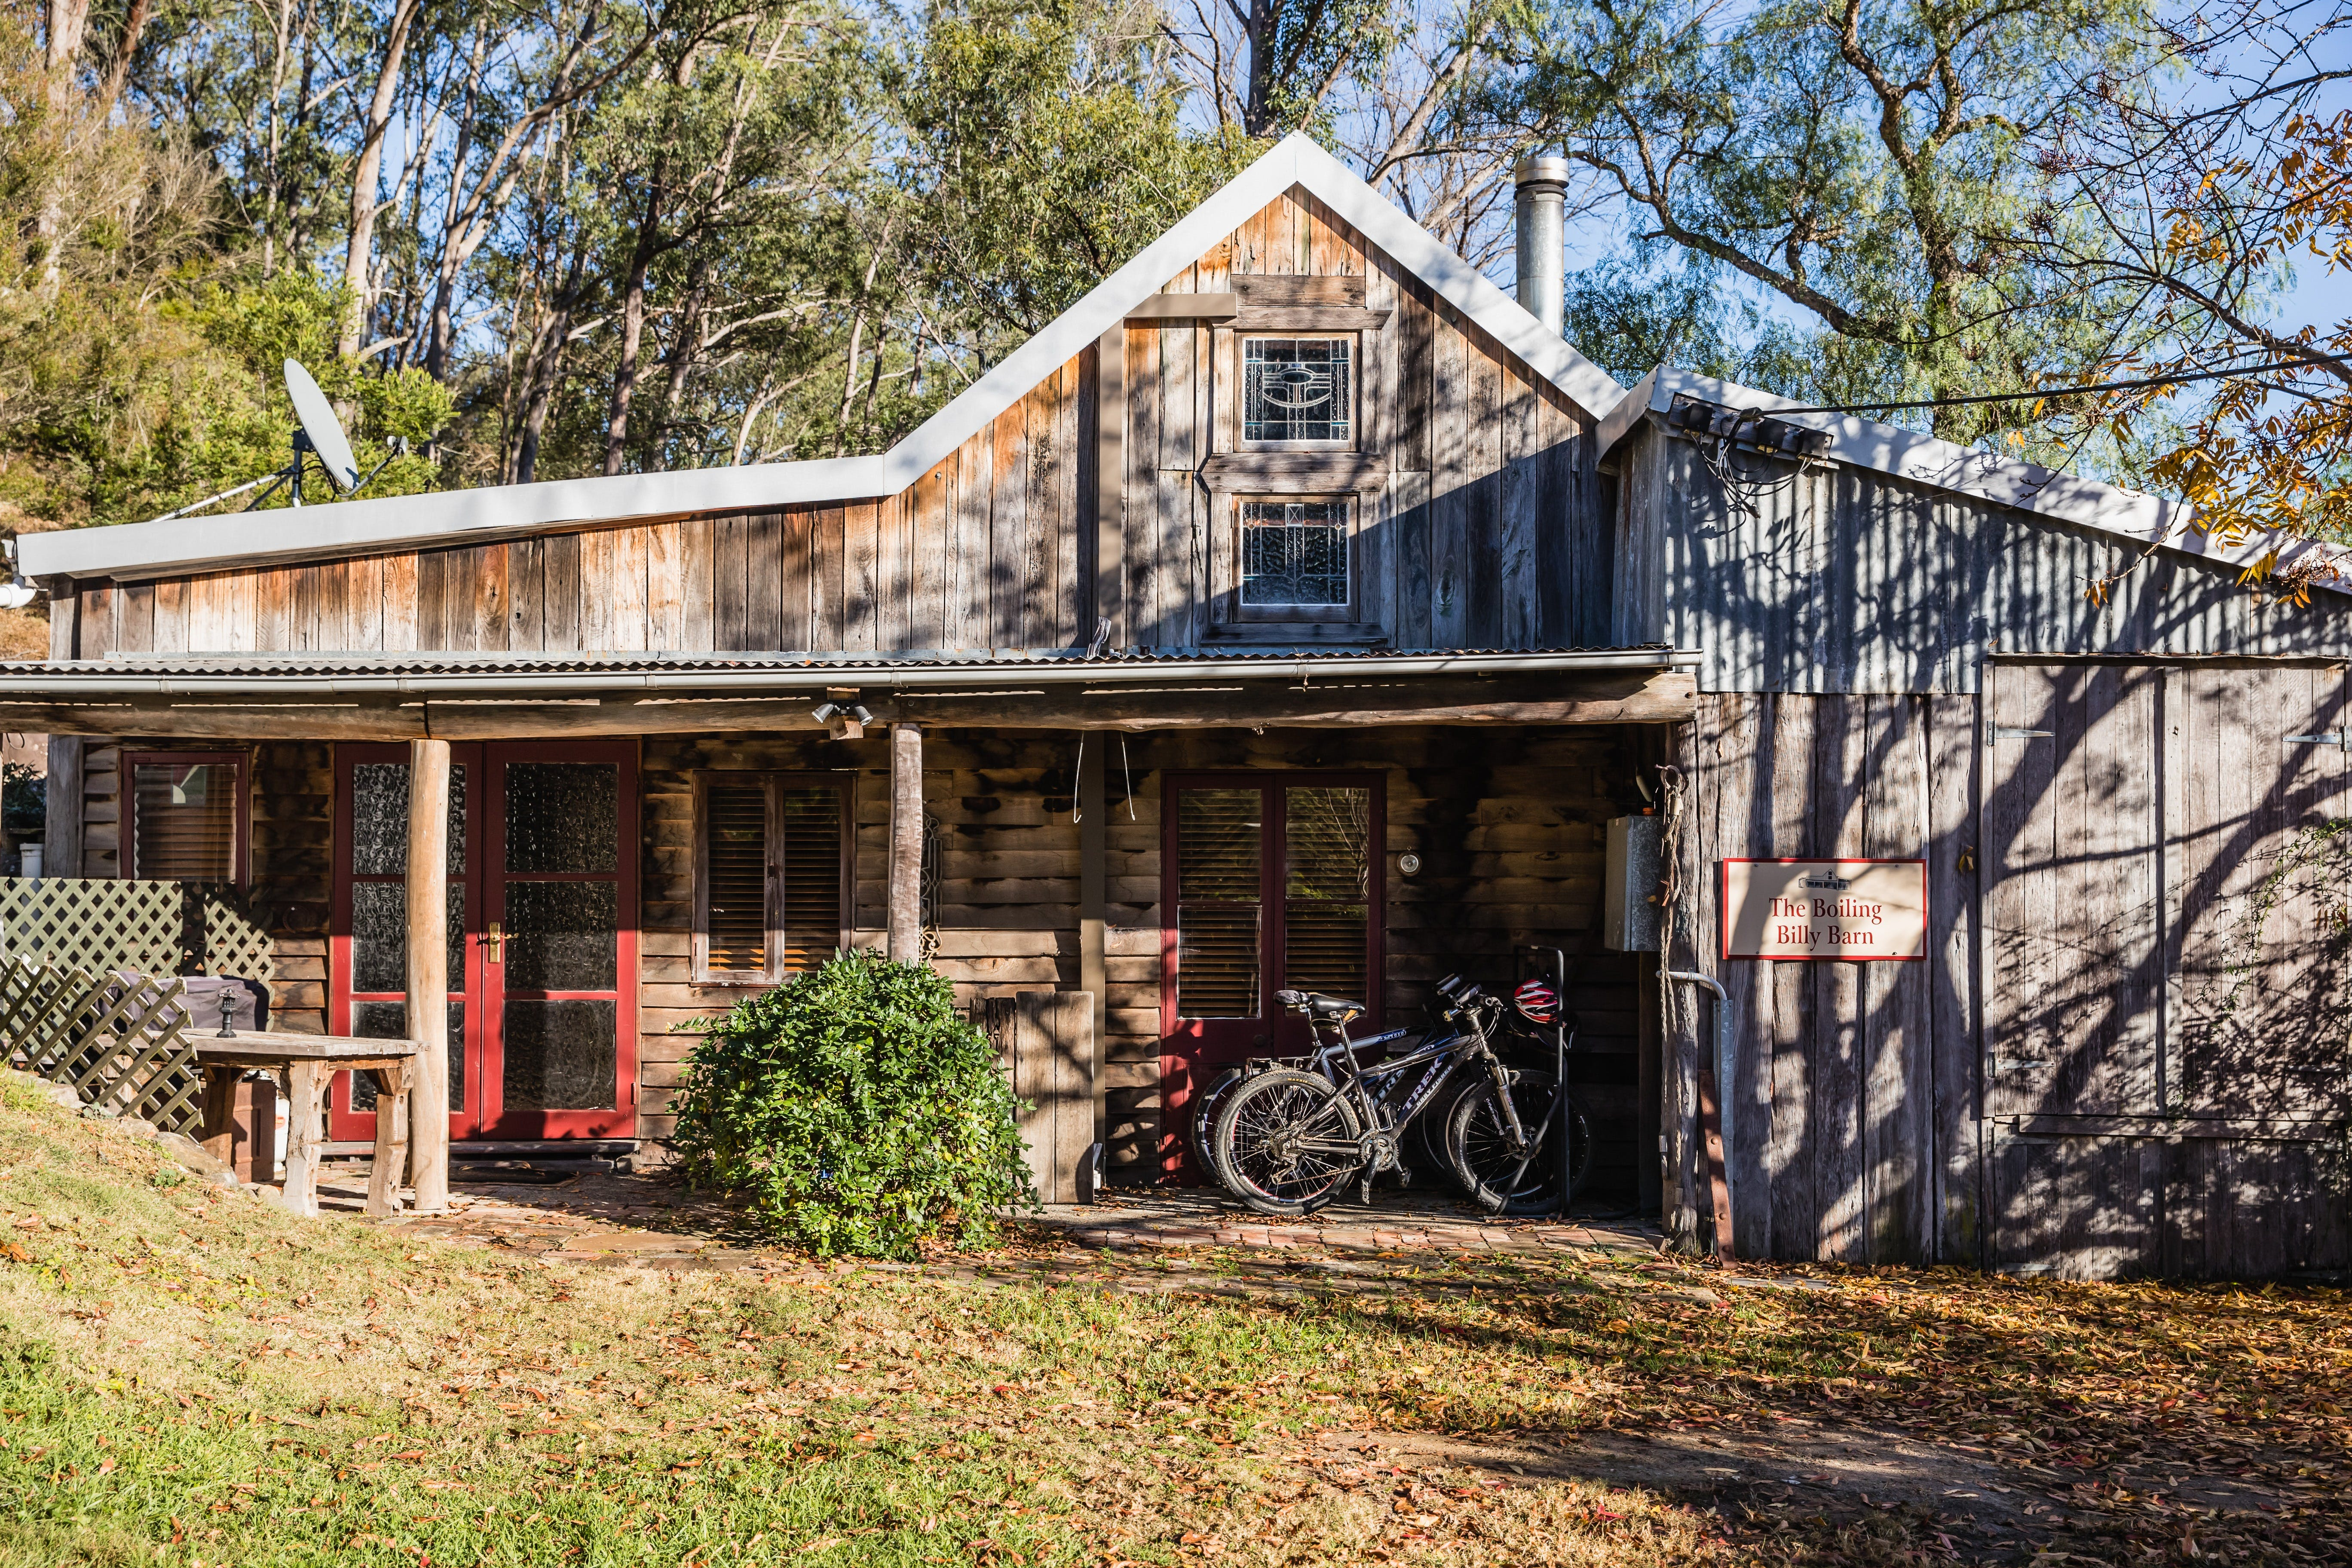 The Boiling Billy Barn - Carnarvon Accommodation